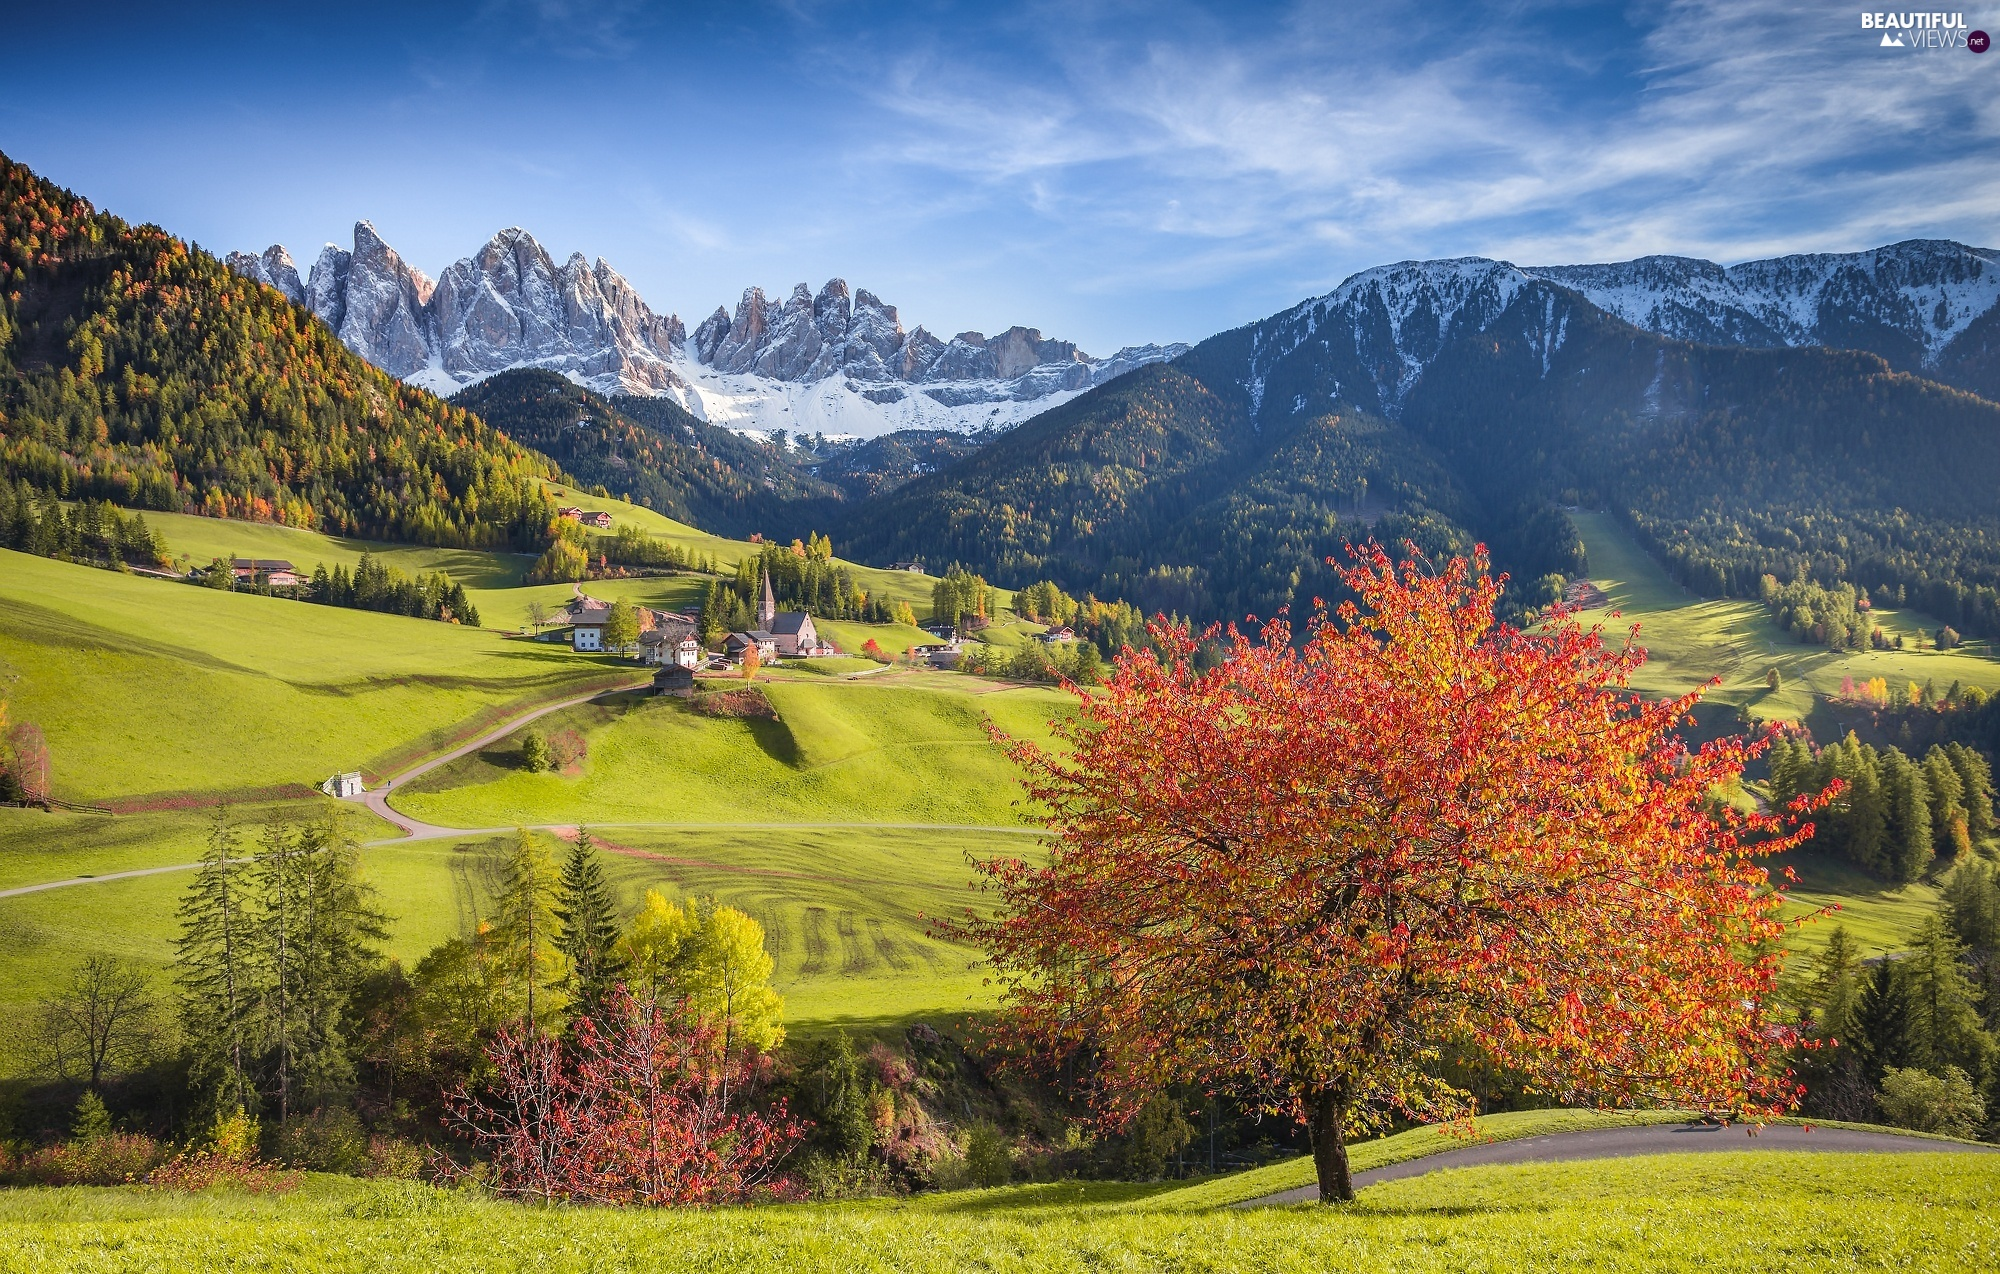 Val di Funes Valley, Dolomites Mountains, Houses, The Hills, viewes, Santa Maddalena, Italy, trees